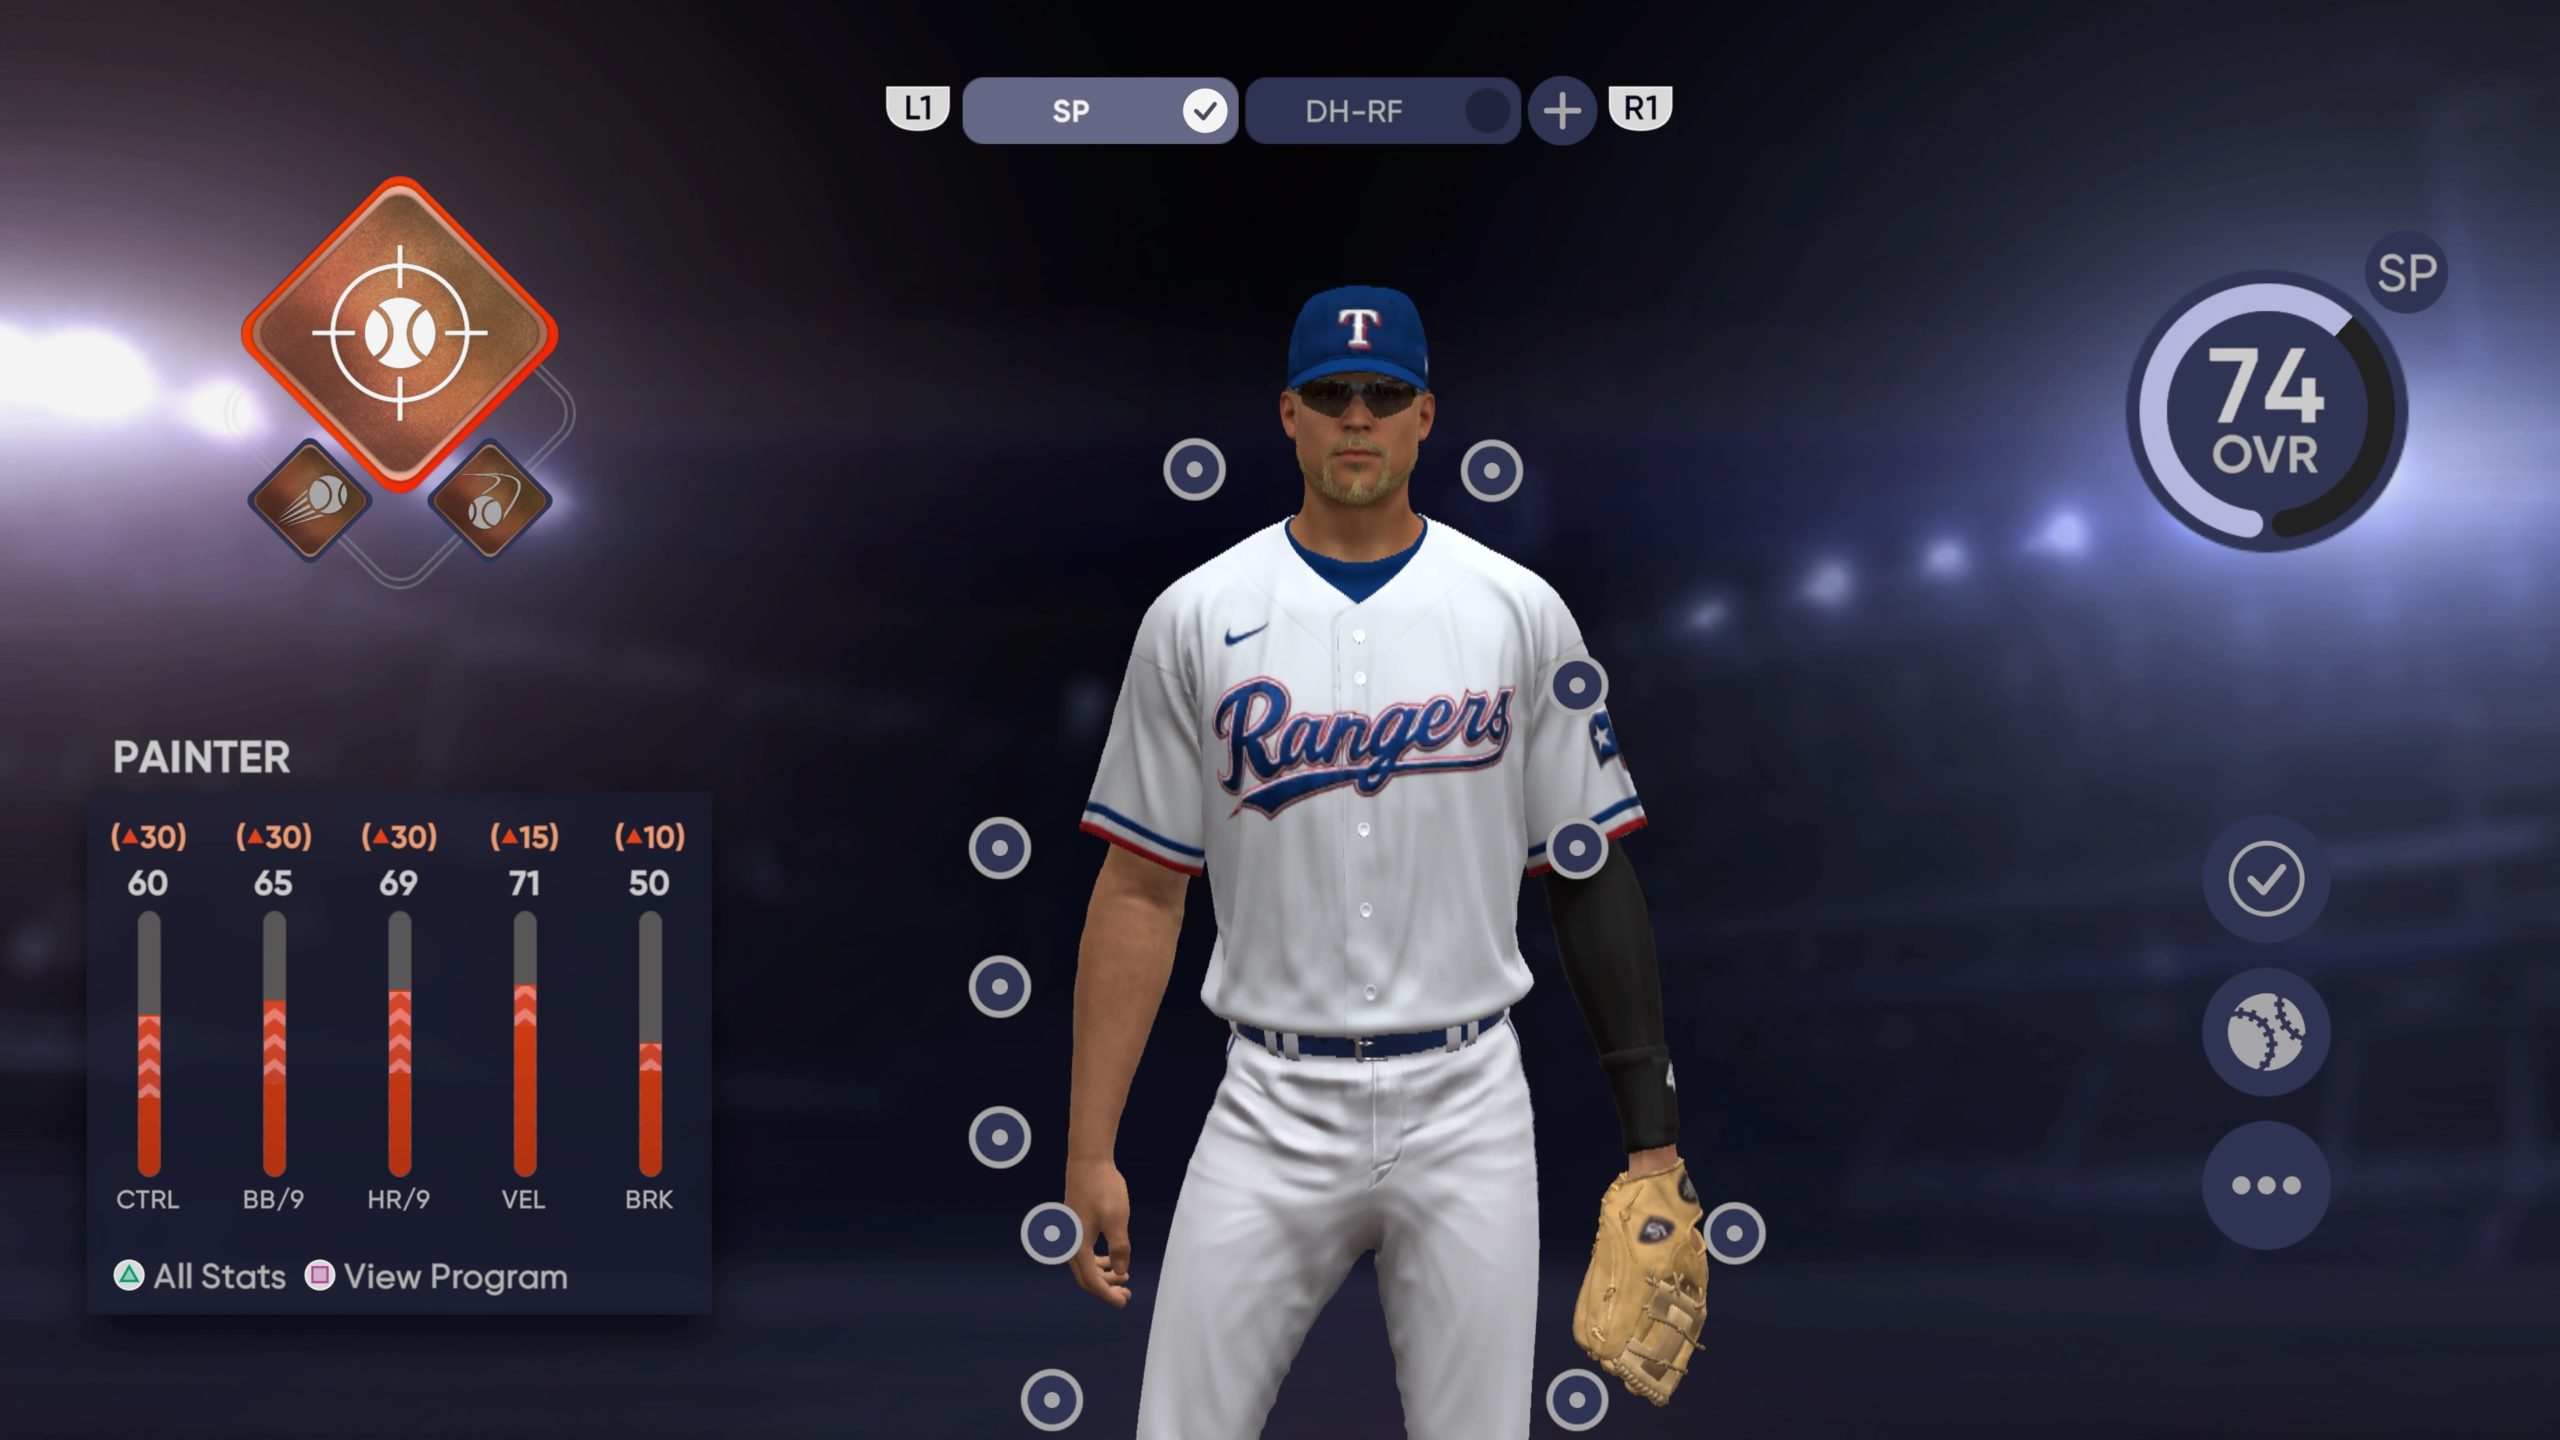 MLB The Show 21 Review – Welcome to New Platforms